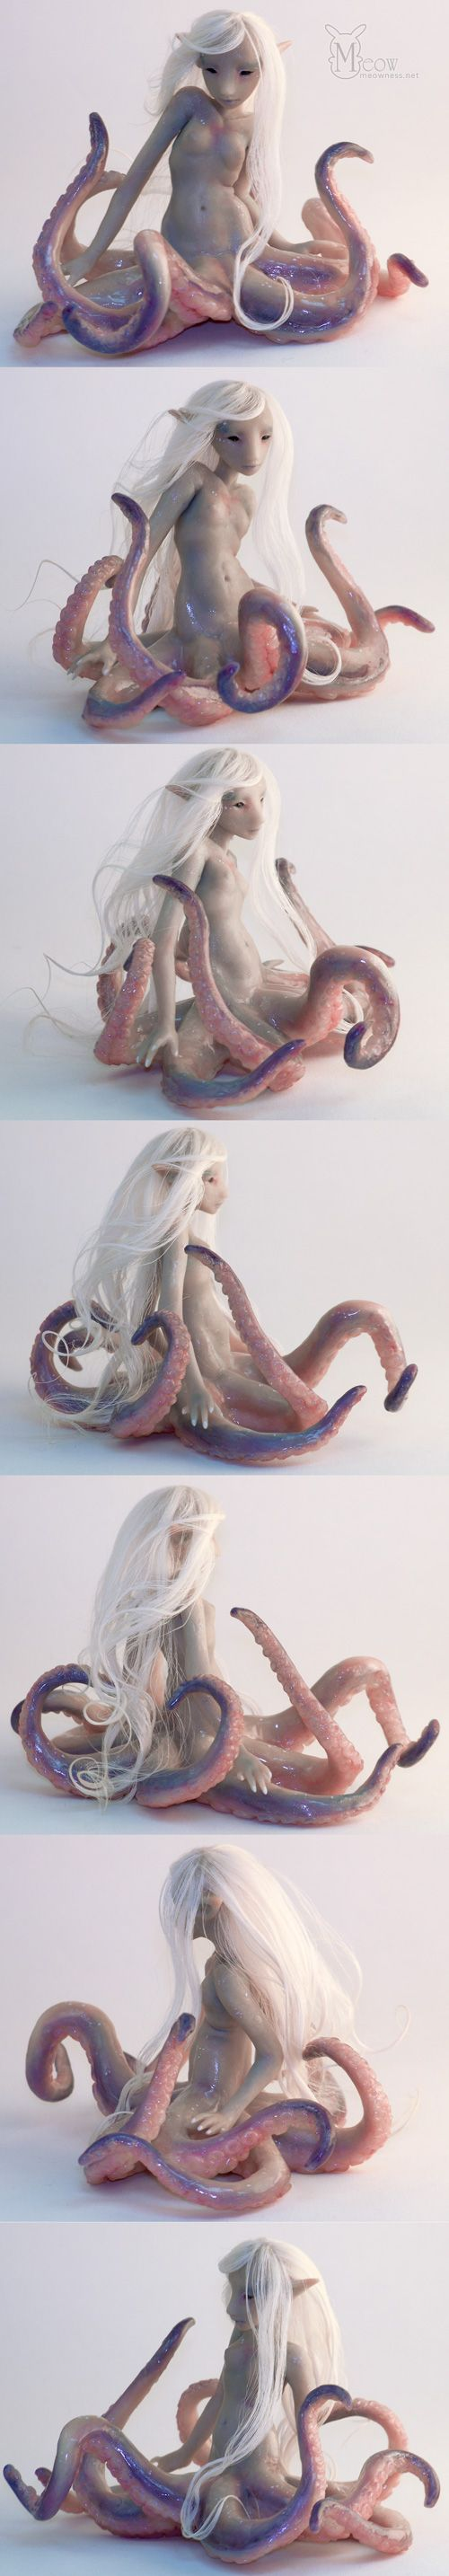 OOAK Octopus Mermaid Sculpture Polymer Clay Fairy Art Doll Fantasy Sculpture | eBay